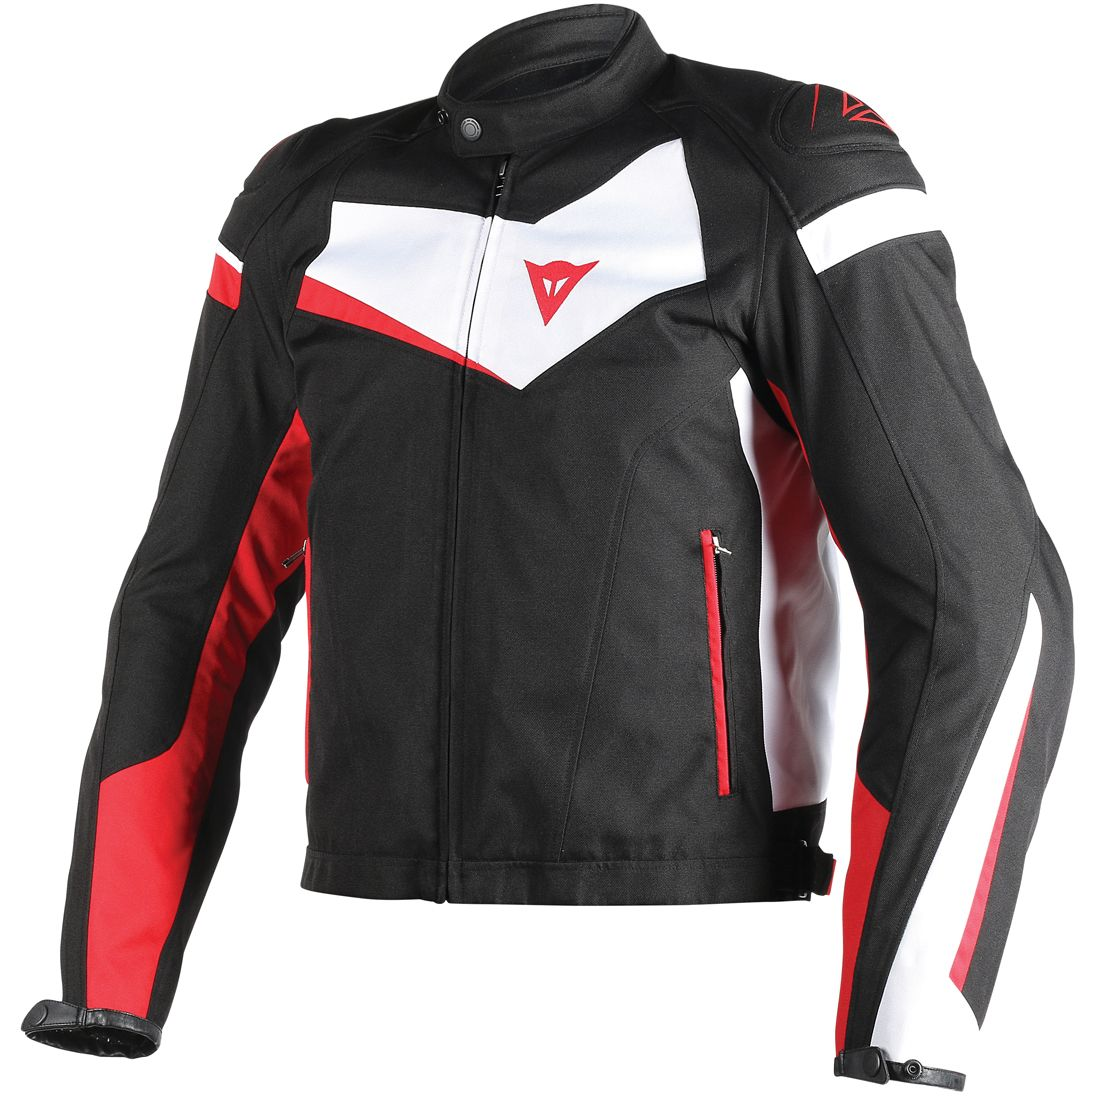 【DAINESE】VELOSTER TEX 車衣外套